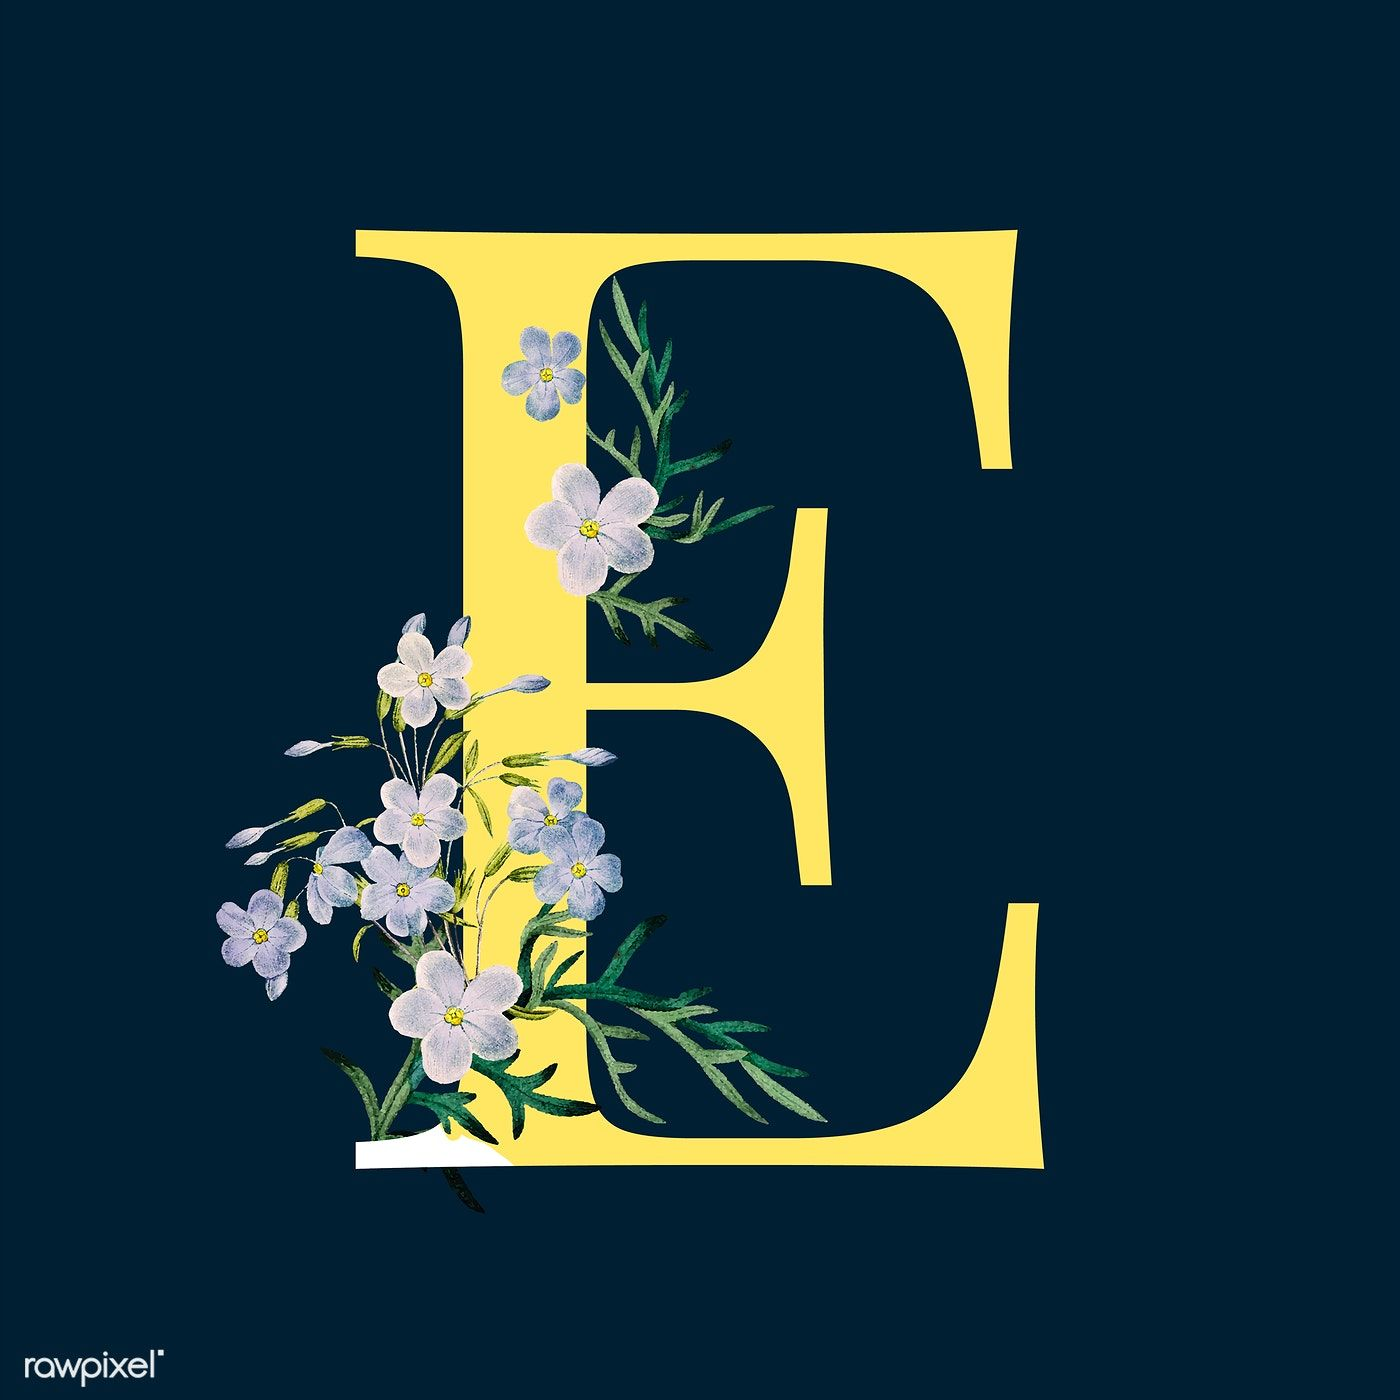 Yellow Letter E Decorated With Hand Drawn Blue Phlox Vector Free Image By Rawpixel Com Sasi How To Draw Hands Vector Free Free Illustrations